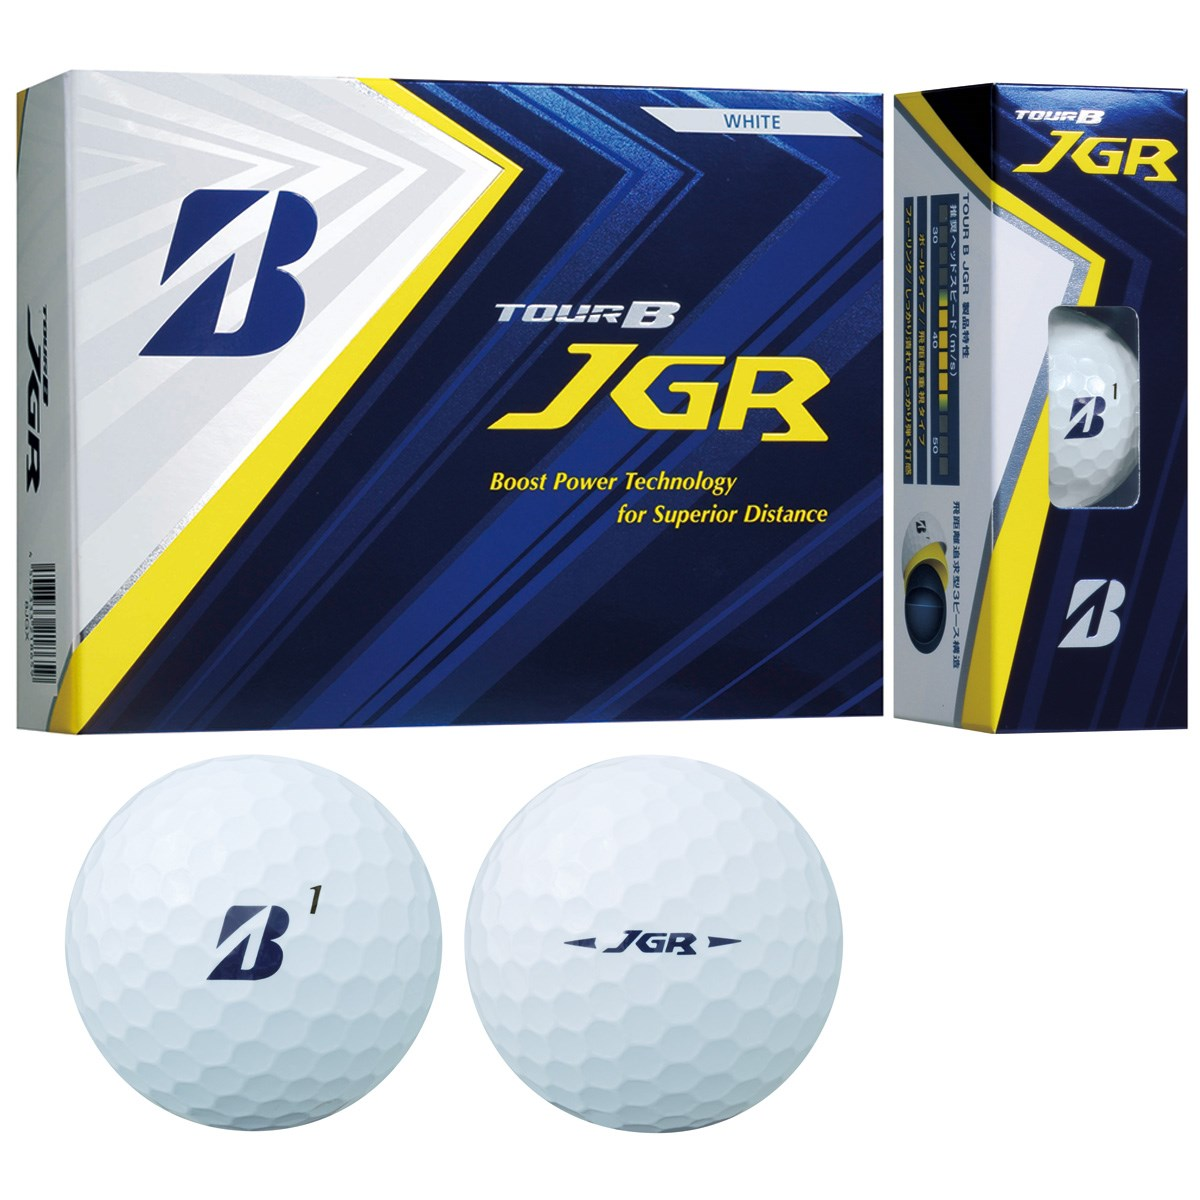 ブリヂストン(BRIDGESTONE GOLF) JGRボール